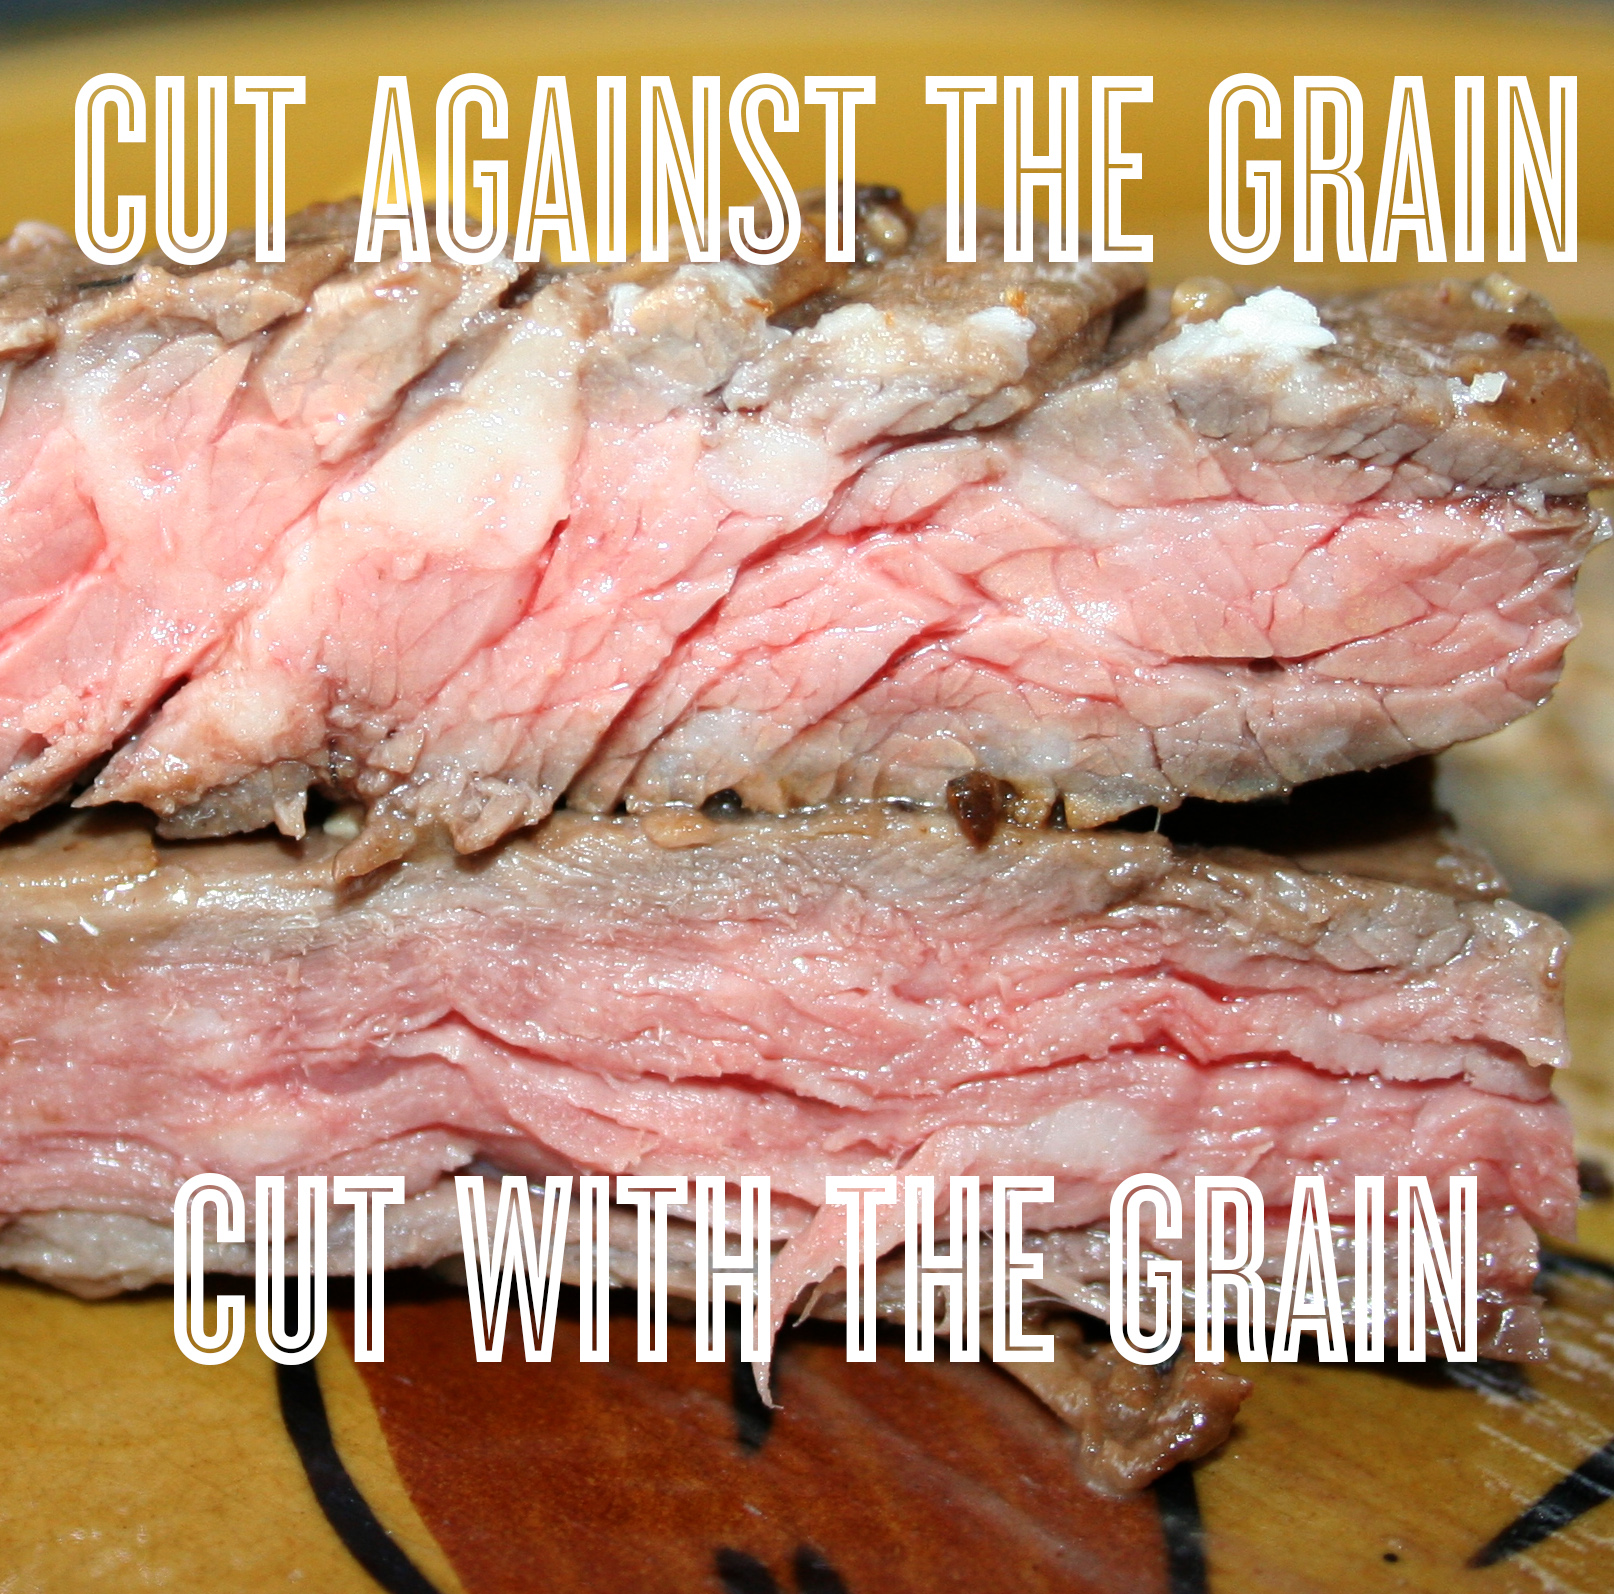 With and against grain